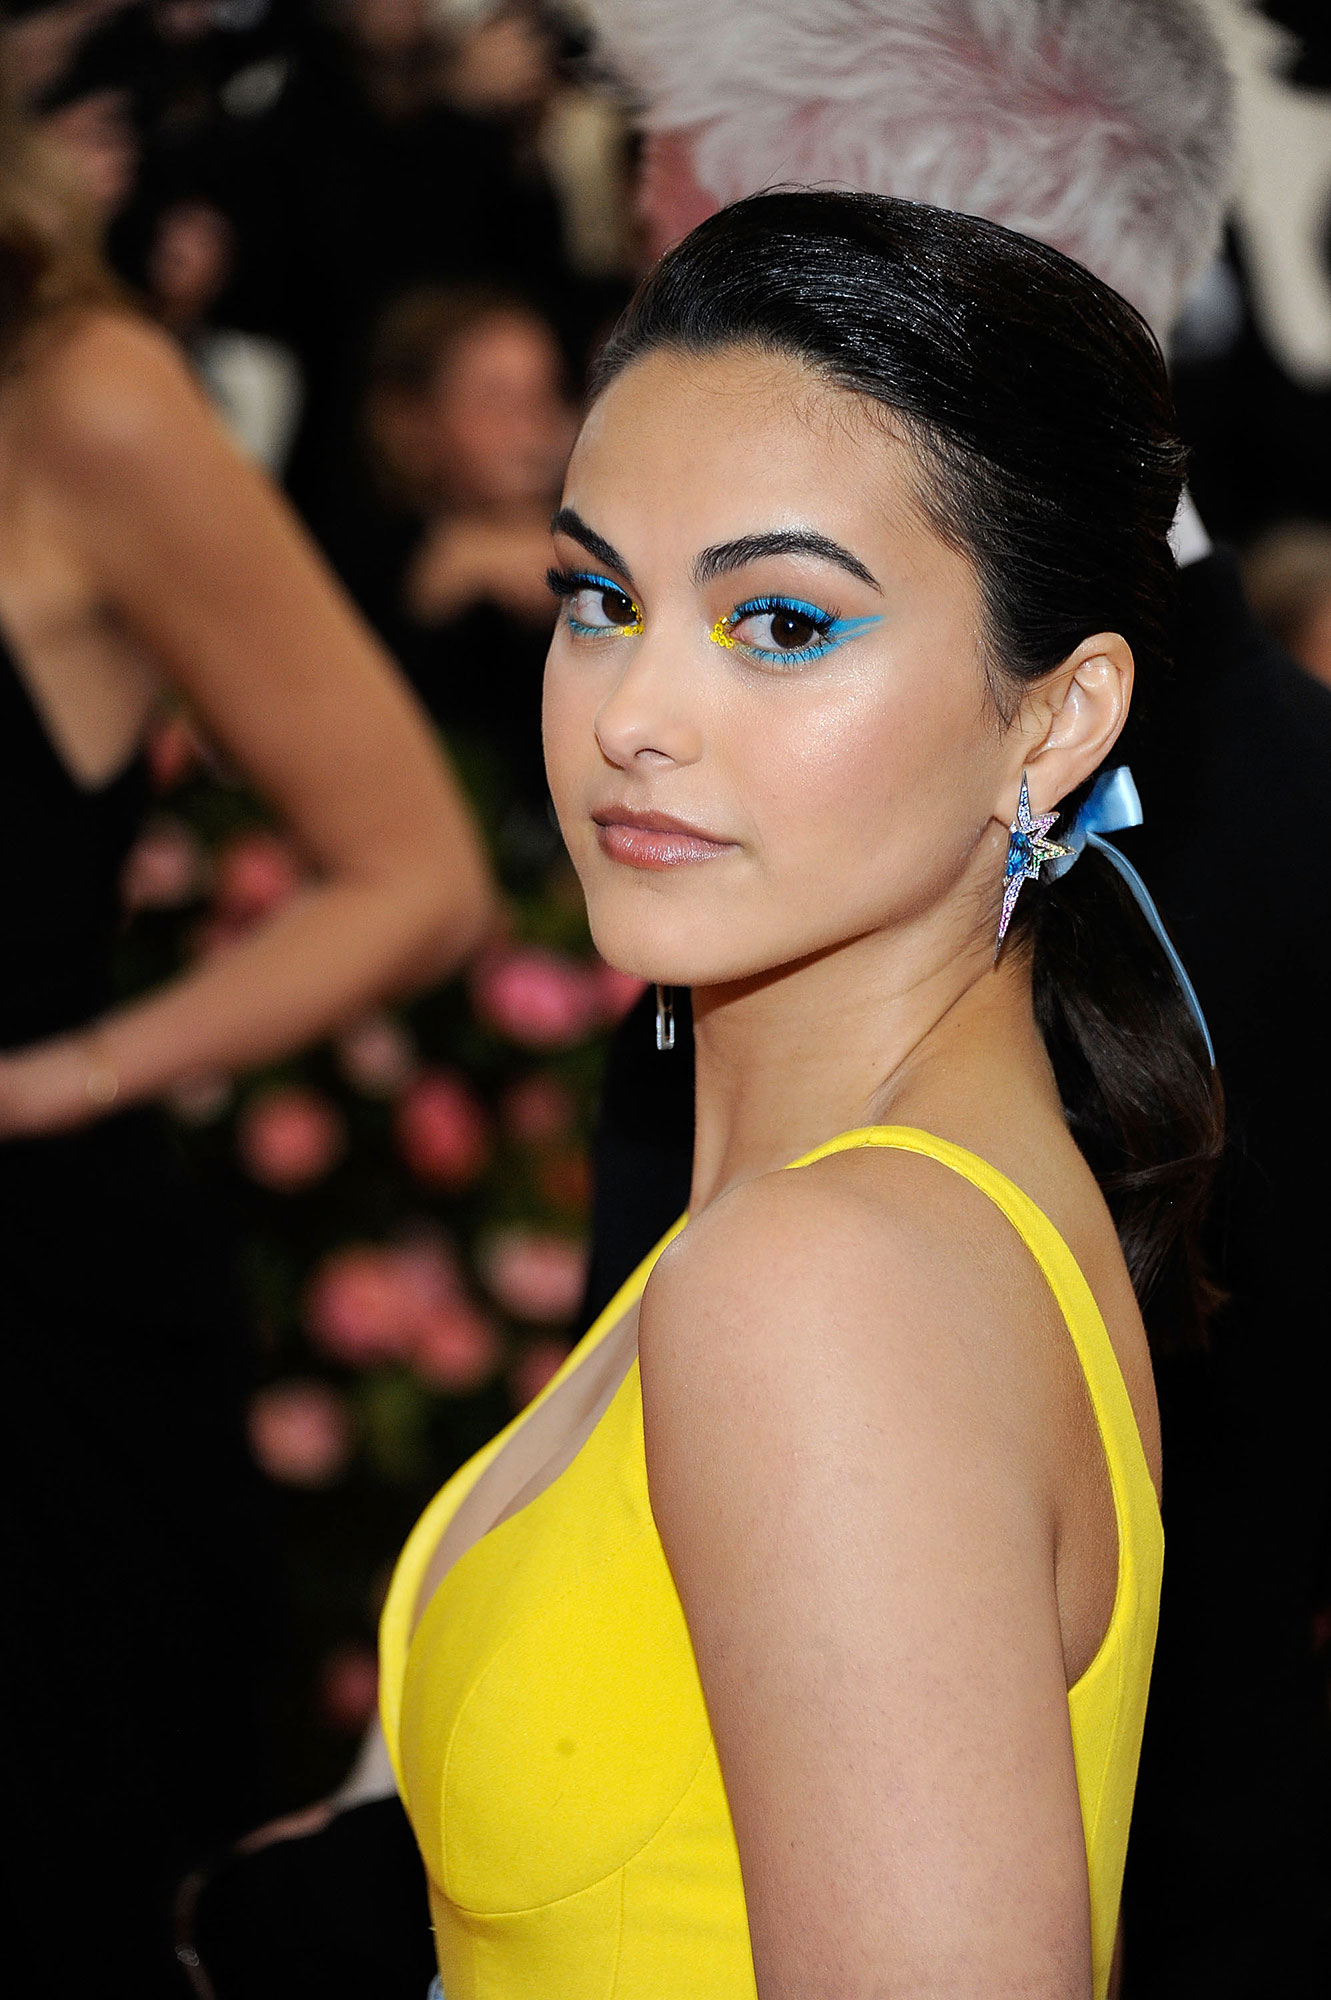 Camila Mendes Fresh Cat Eye - The Riverdale star stunned at the 2019 Met Gala with a pigmented eye. The standout makeup was created by Beau Nelson, who used the Covergirl TrueNaked Dazed Palette for the inner gold and Covergirl Get In Line eyeliner in Teal Crystal for the extra intense pop of blue.